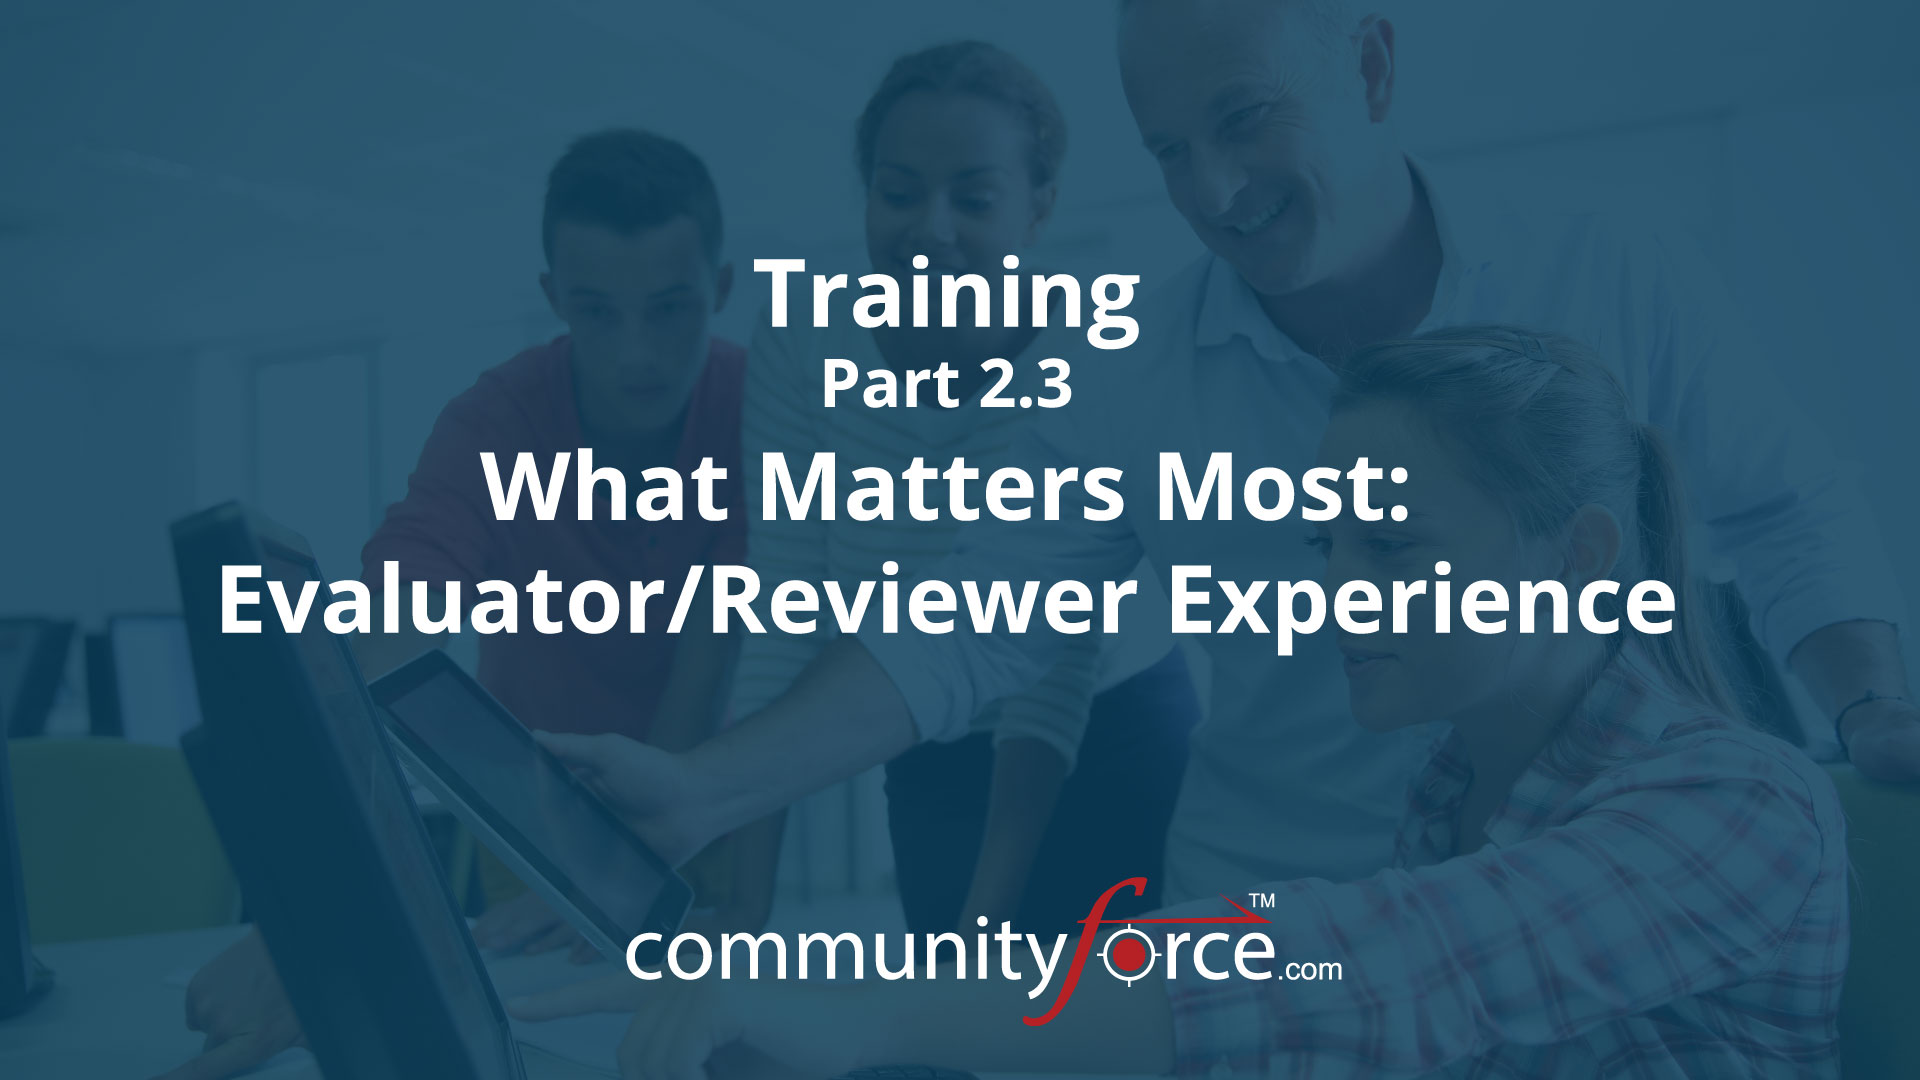 LF1 Training Part 2.3: What Matters Most: Evaluator/Reviewer Experience